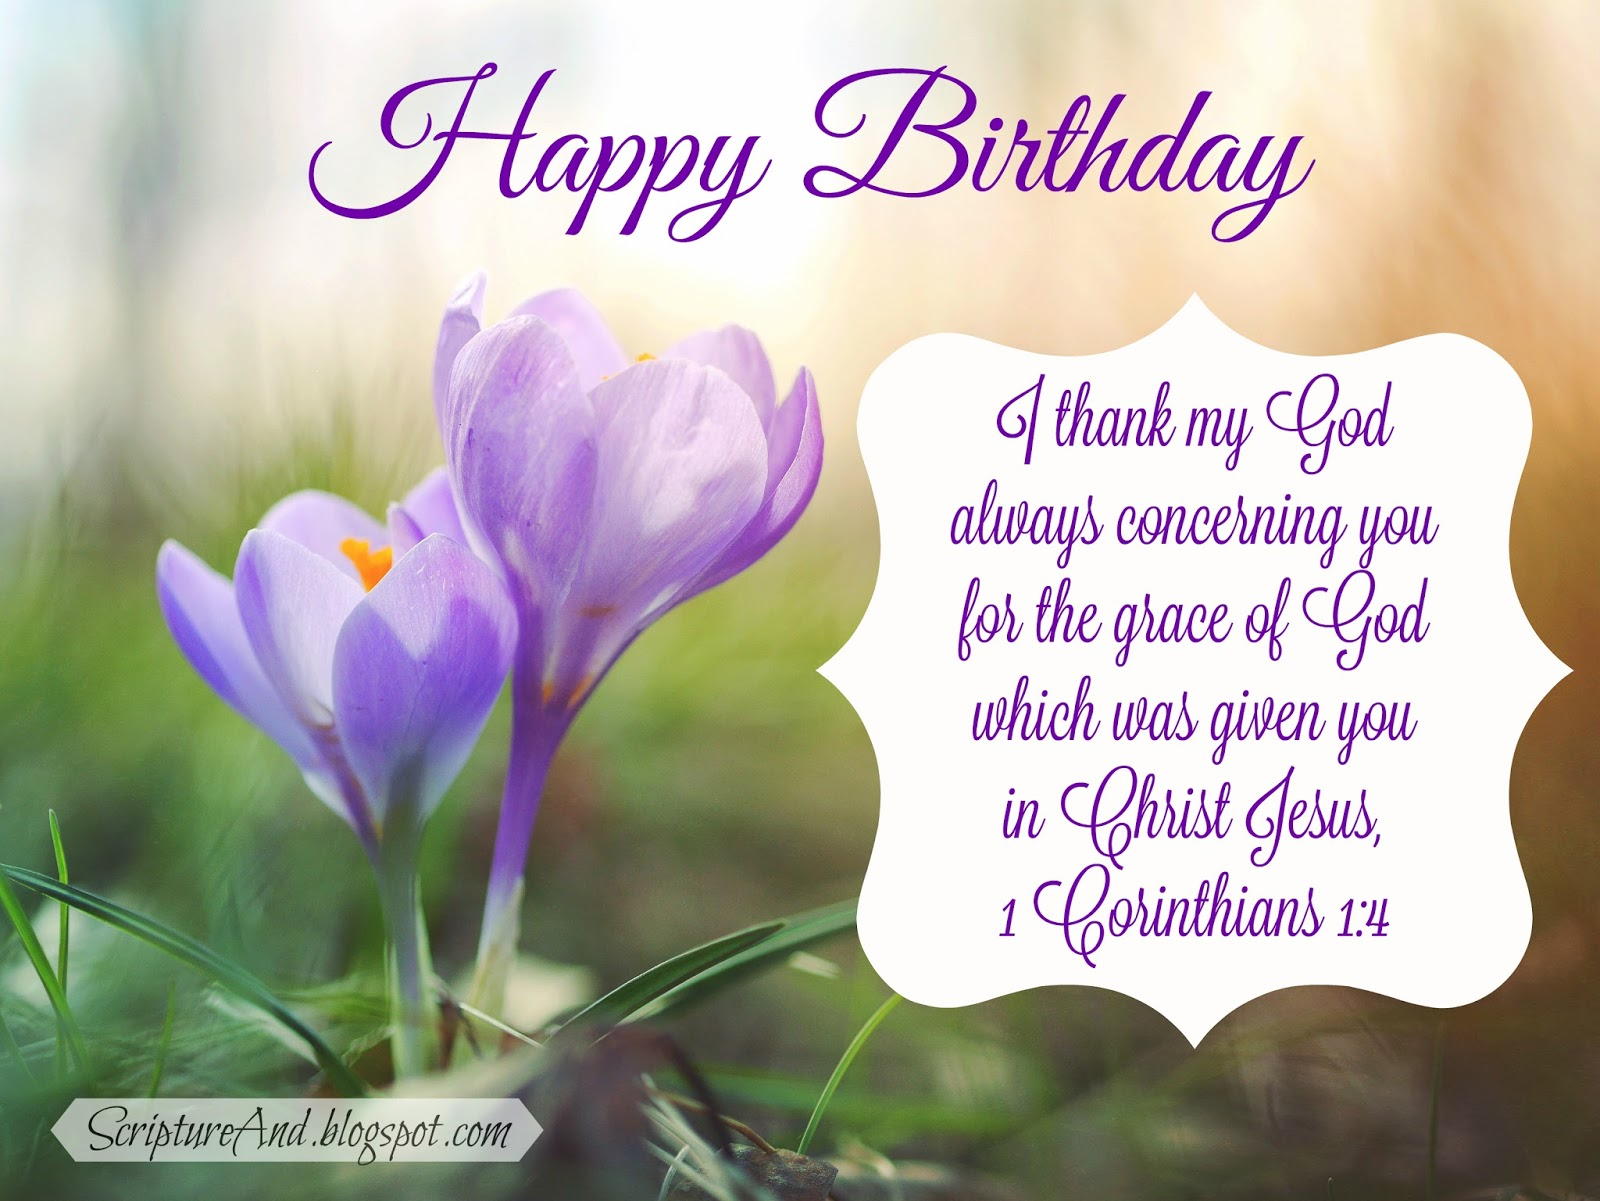 Free Birthday Images With Bible Verses